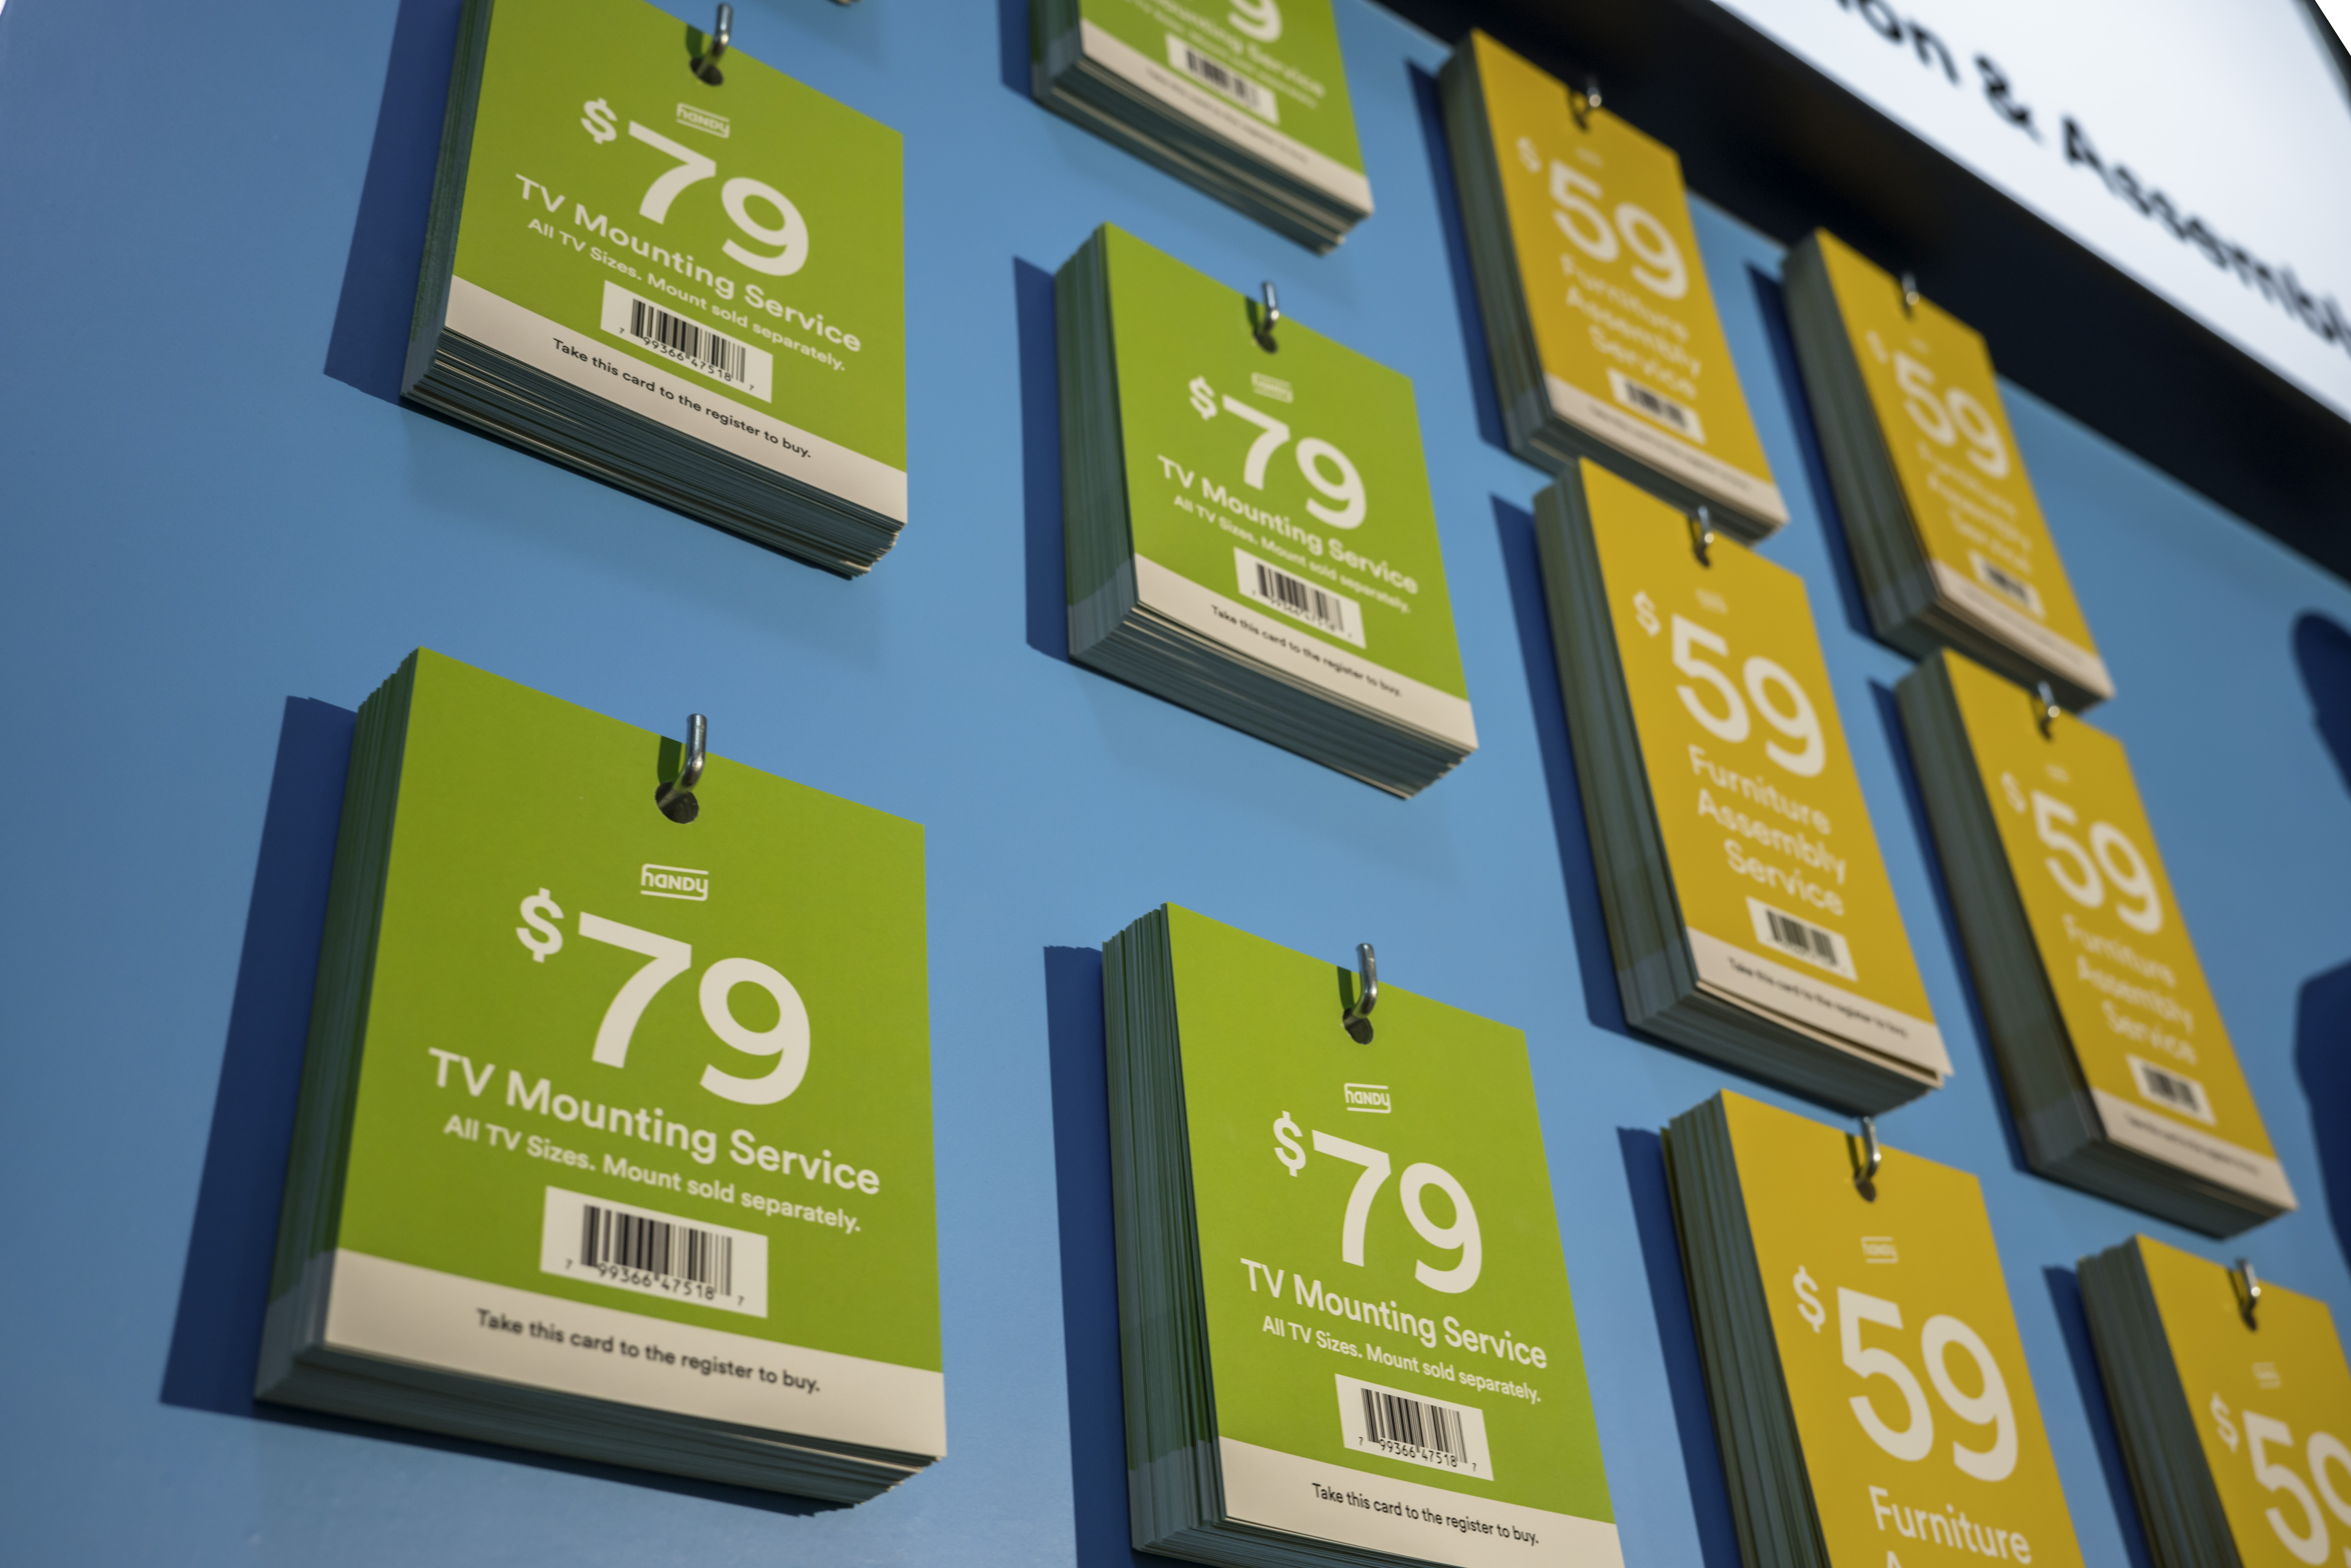 Walmart To Sell Handy S In Home Installation And Assembly Services In Over 2 000 Stores Techcrunch